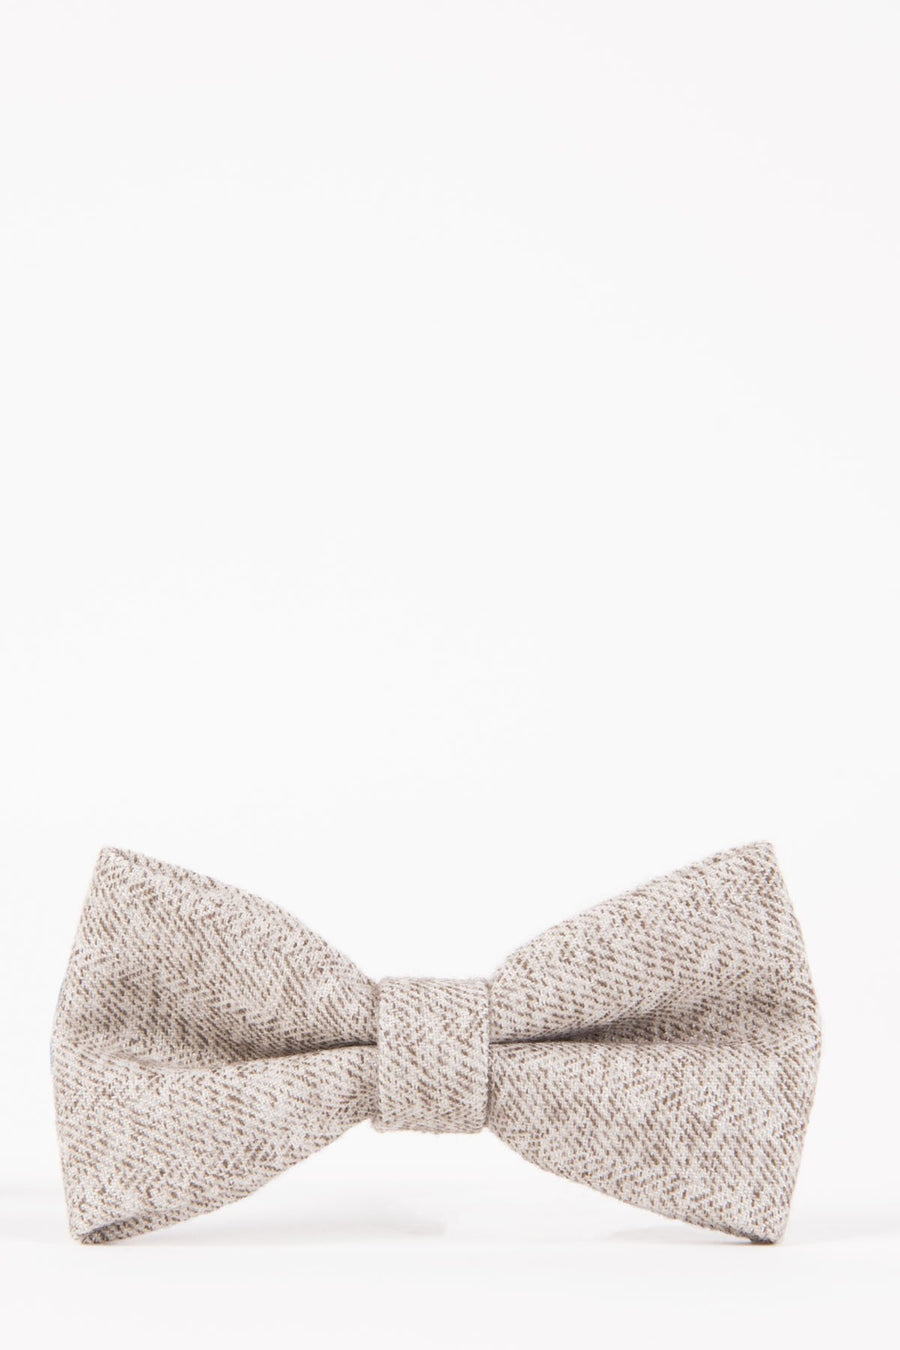 RAYFORD Cream Heritage Tweed Bow Tie - Wedding Suit Direct